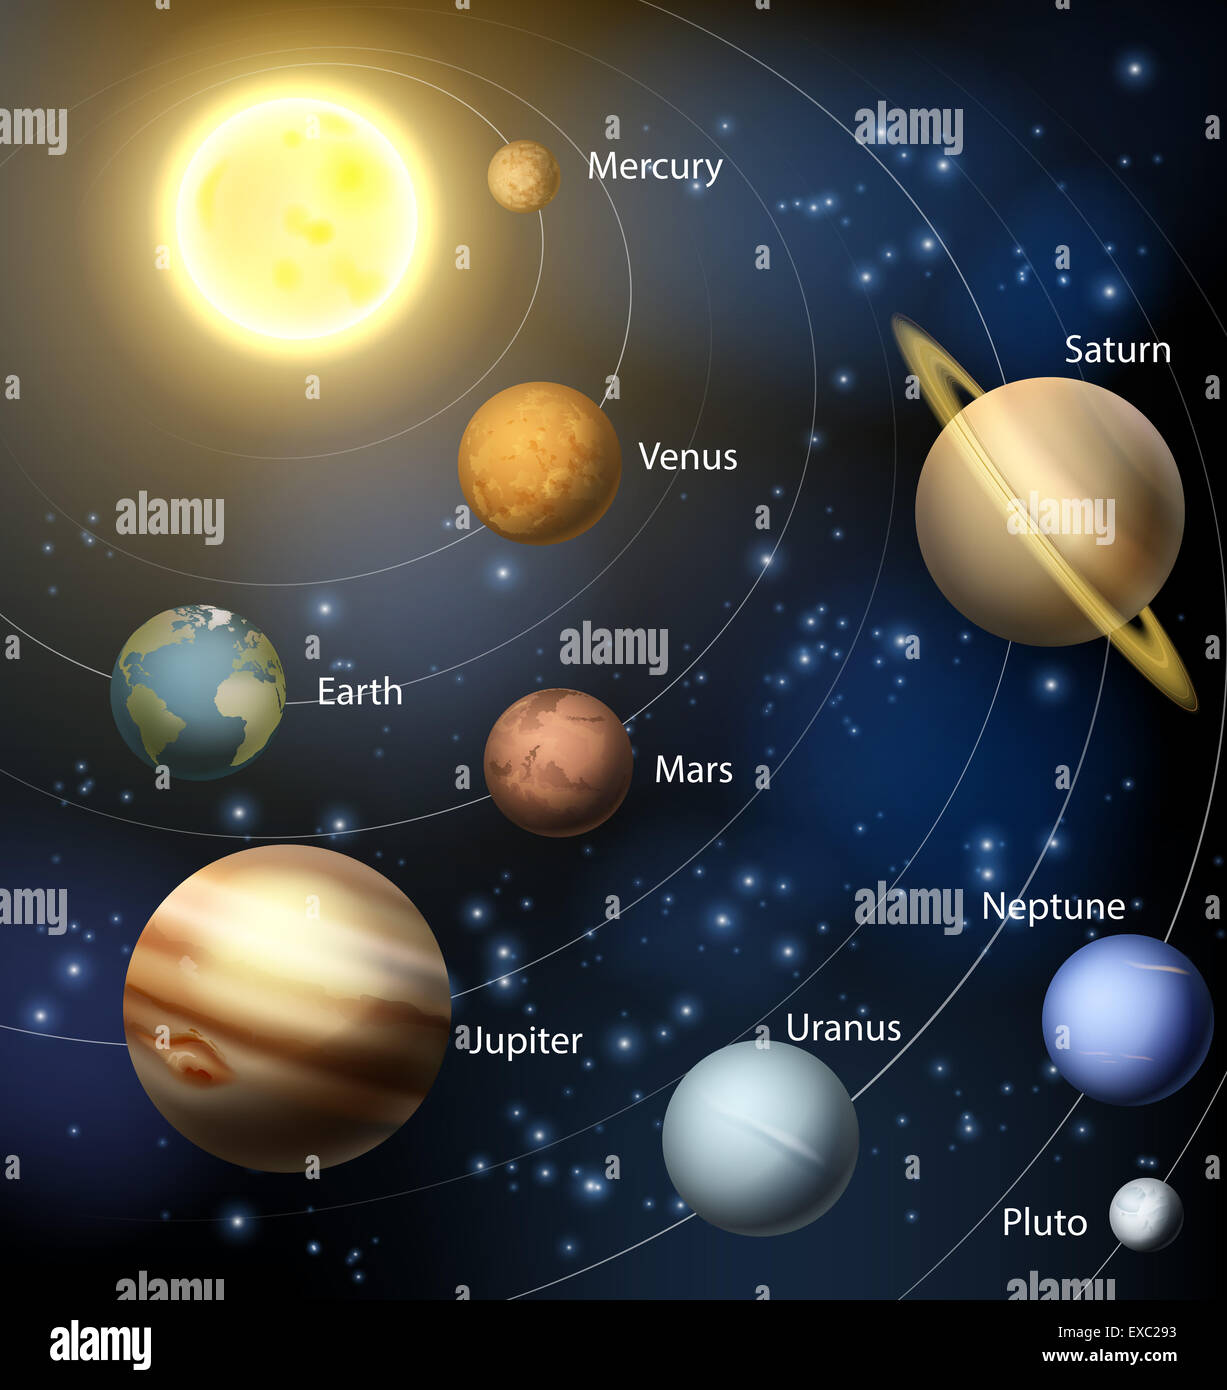 An Illustration Of The Planets Of Our Solar System With